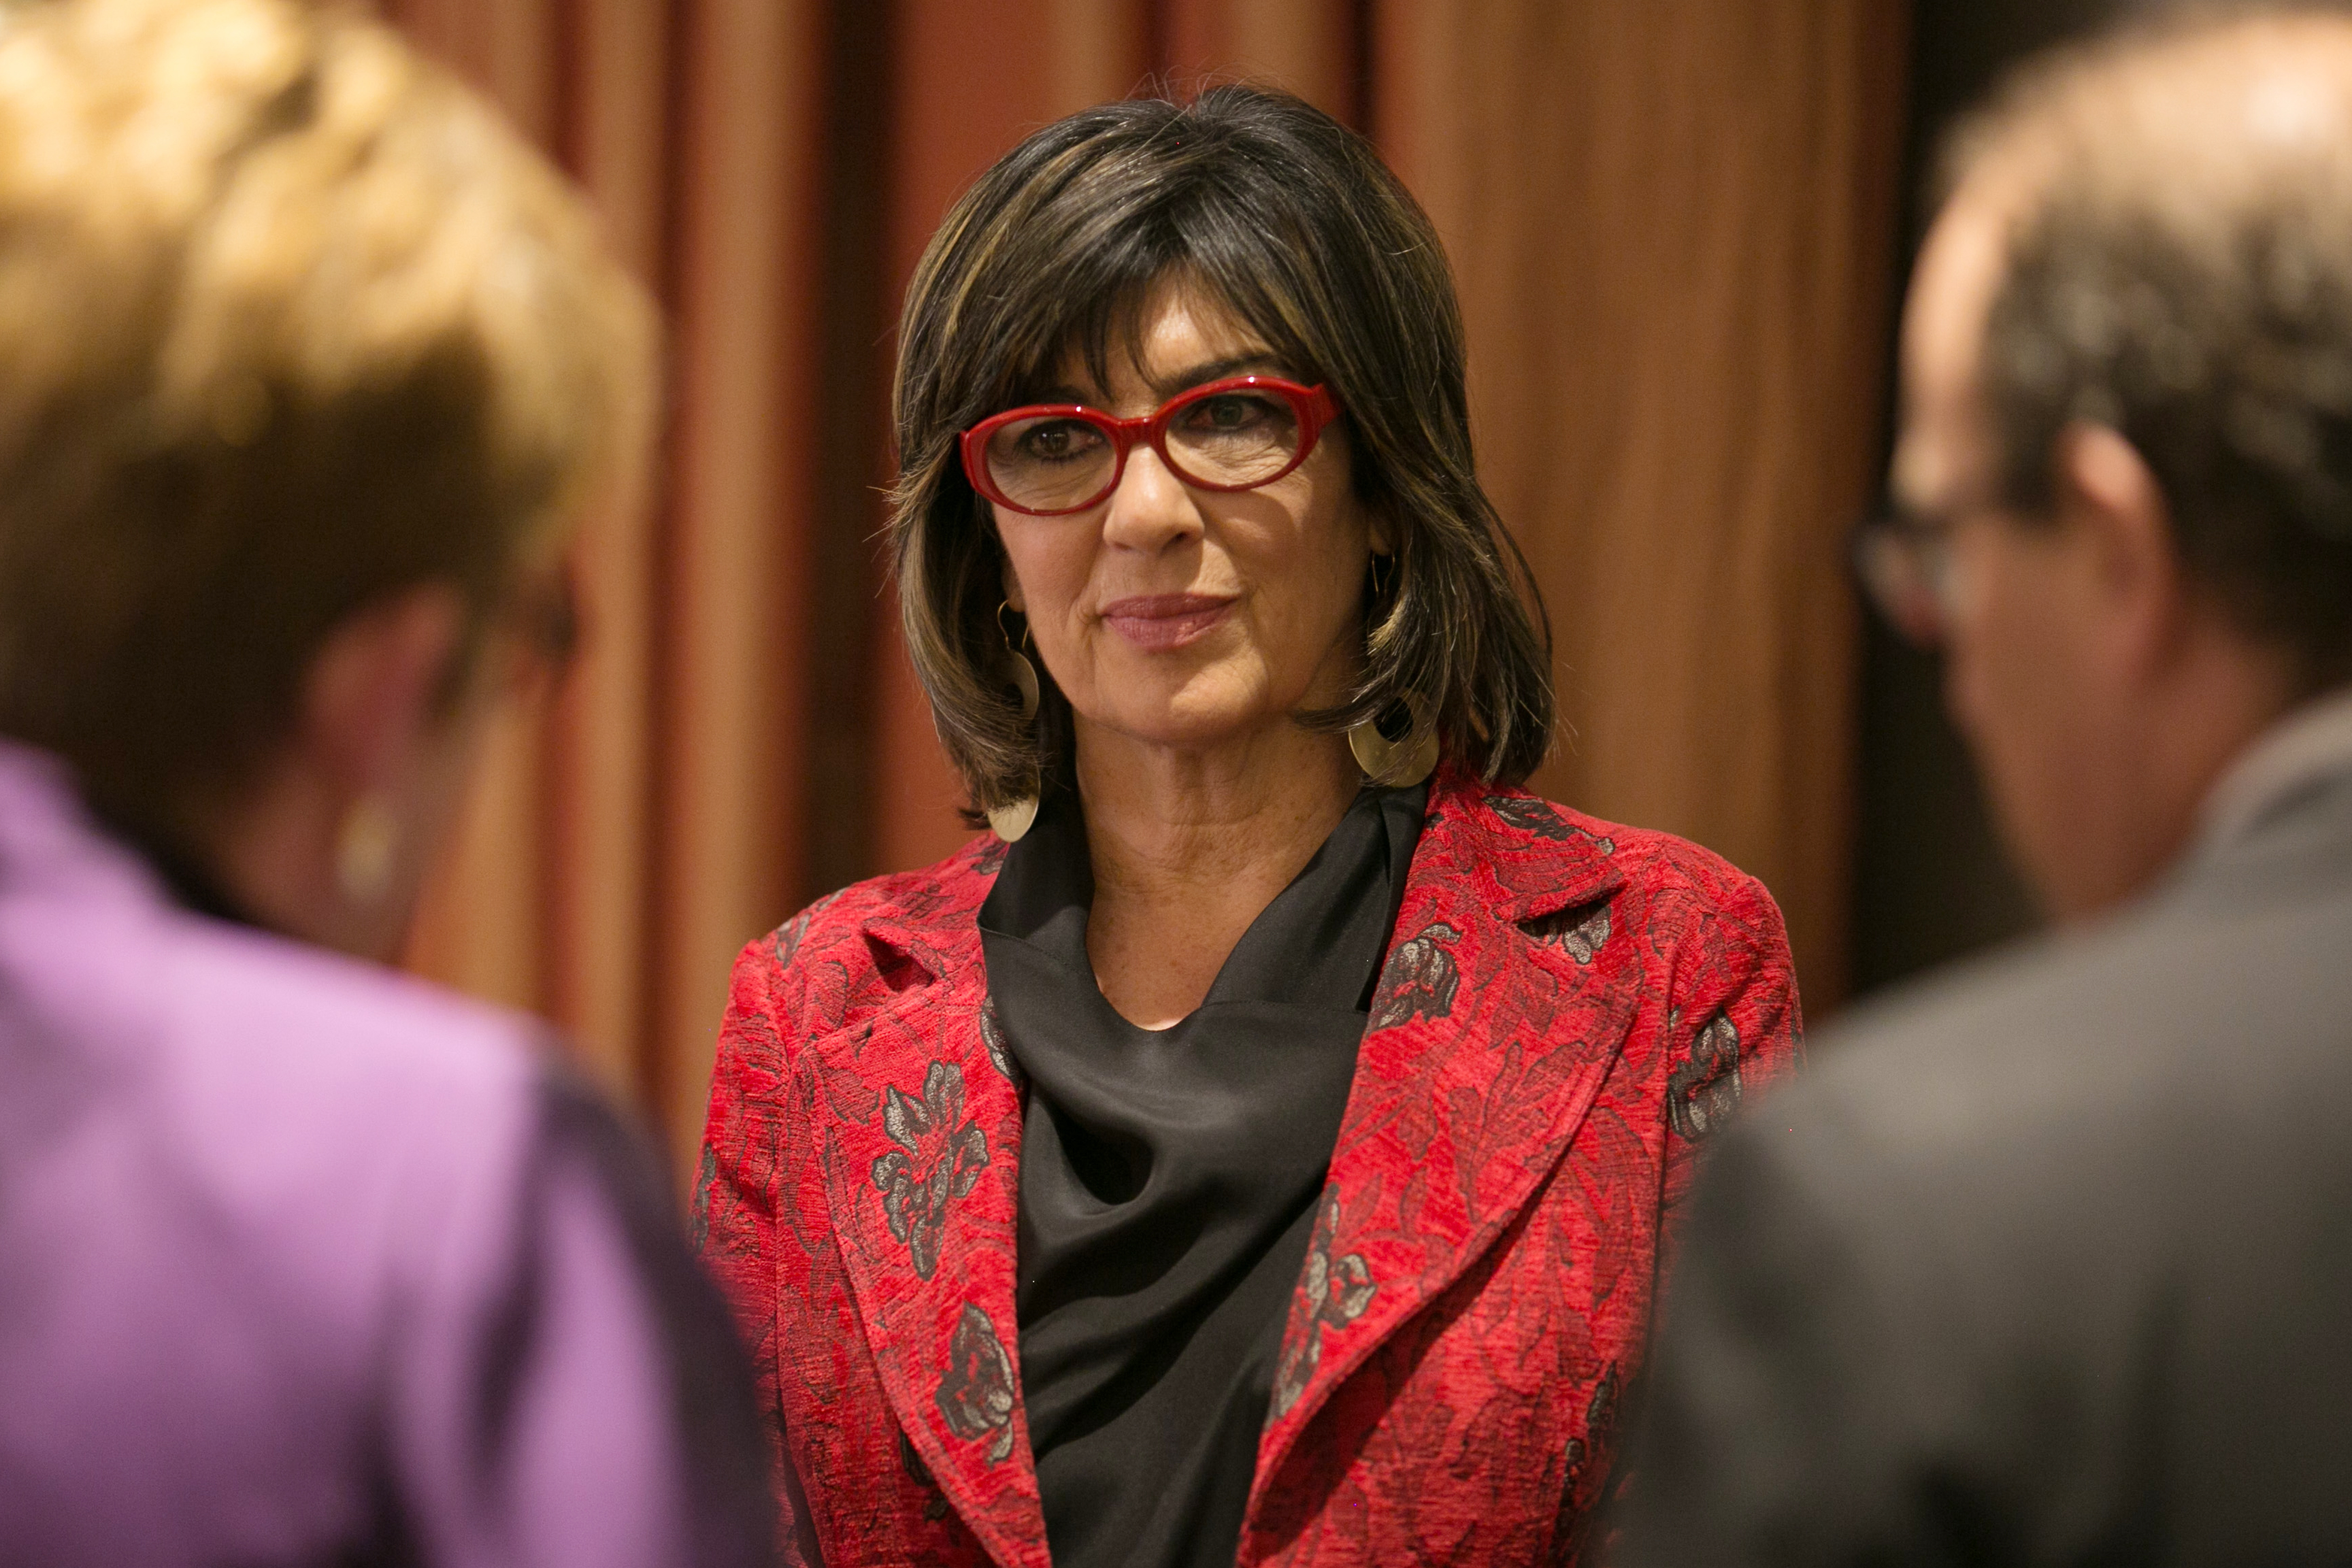 NEW YORK, NY - NOVEMBER 15: Christiane Amanpour speaks with attendees at CPJ's annual International Press Freedom Awards on November 15, 2017 in New York City.